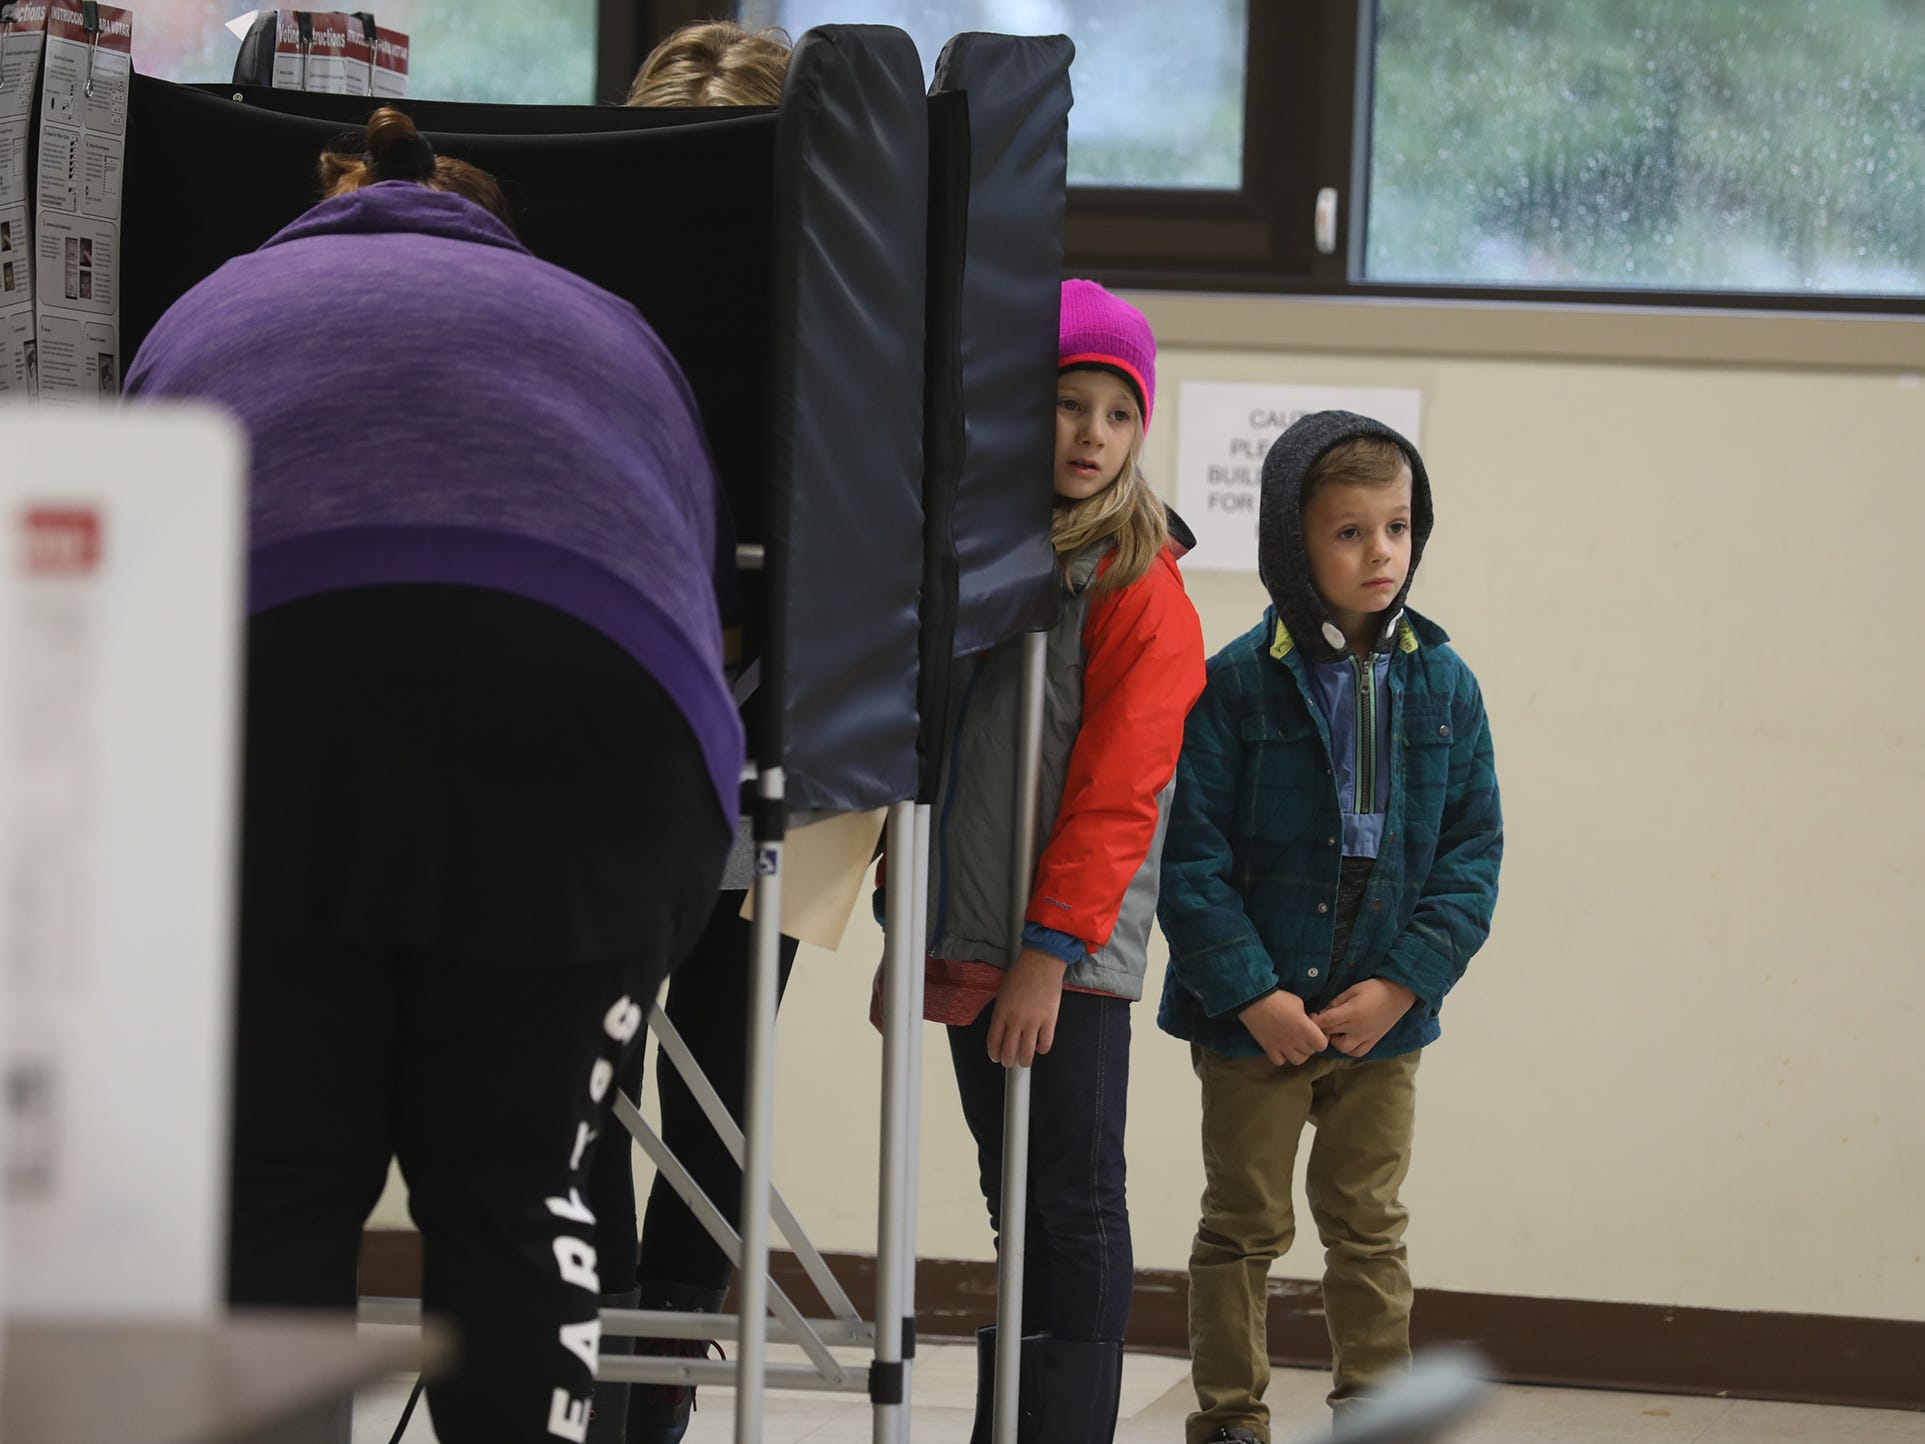 Lucy Teeter and her brother, Finn, look around the room while waiting for their mother, Ashley, to finish voting at Penfield Community Center.